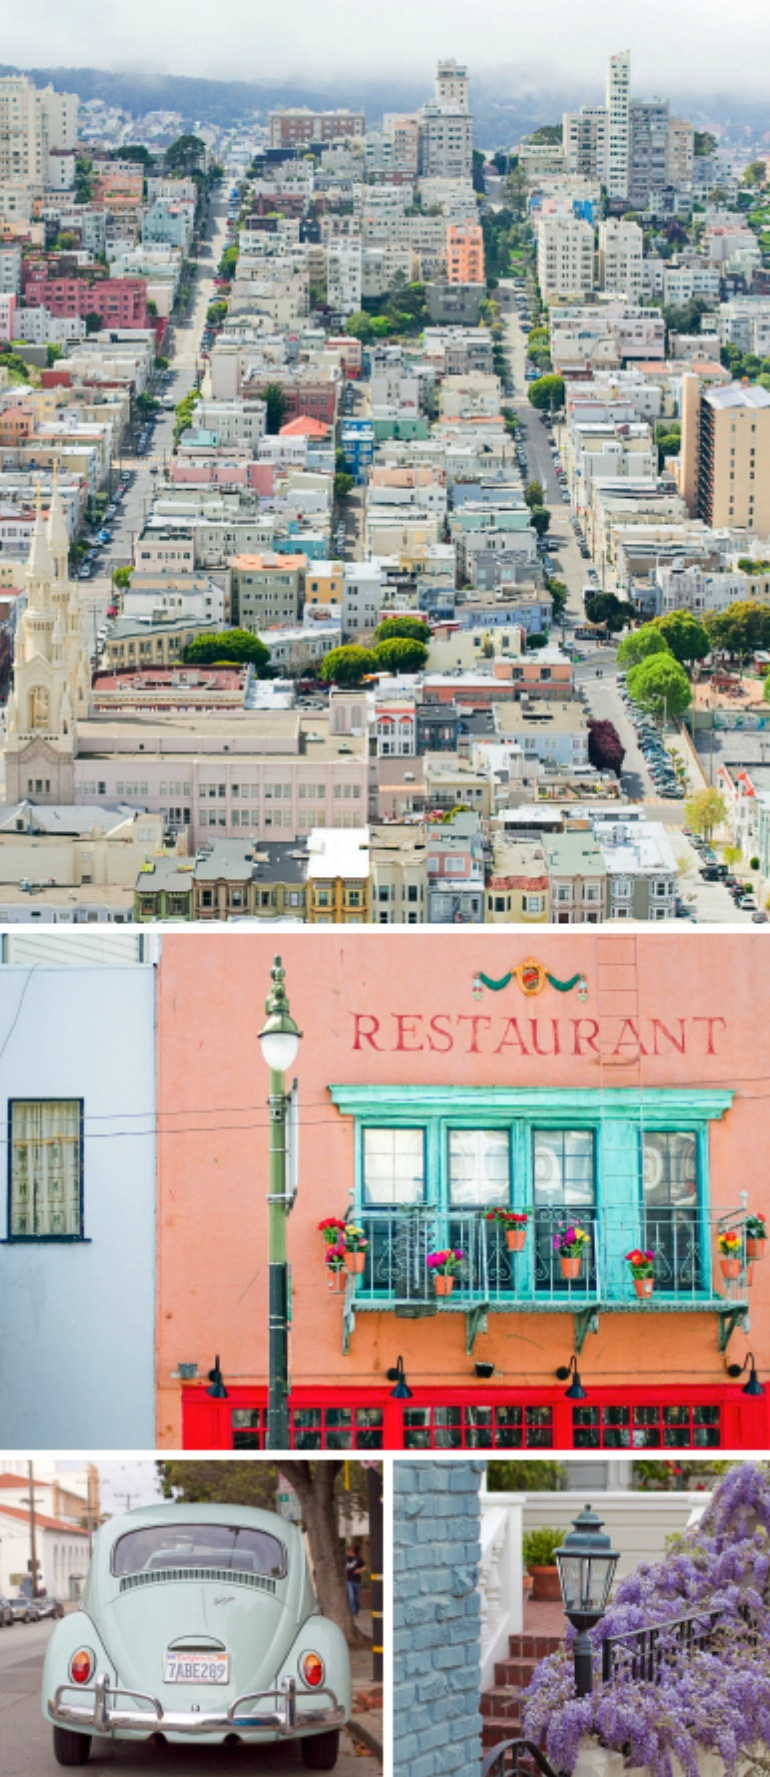 Colours and architecture of San Francisco